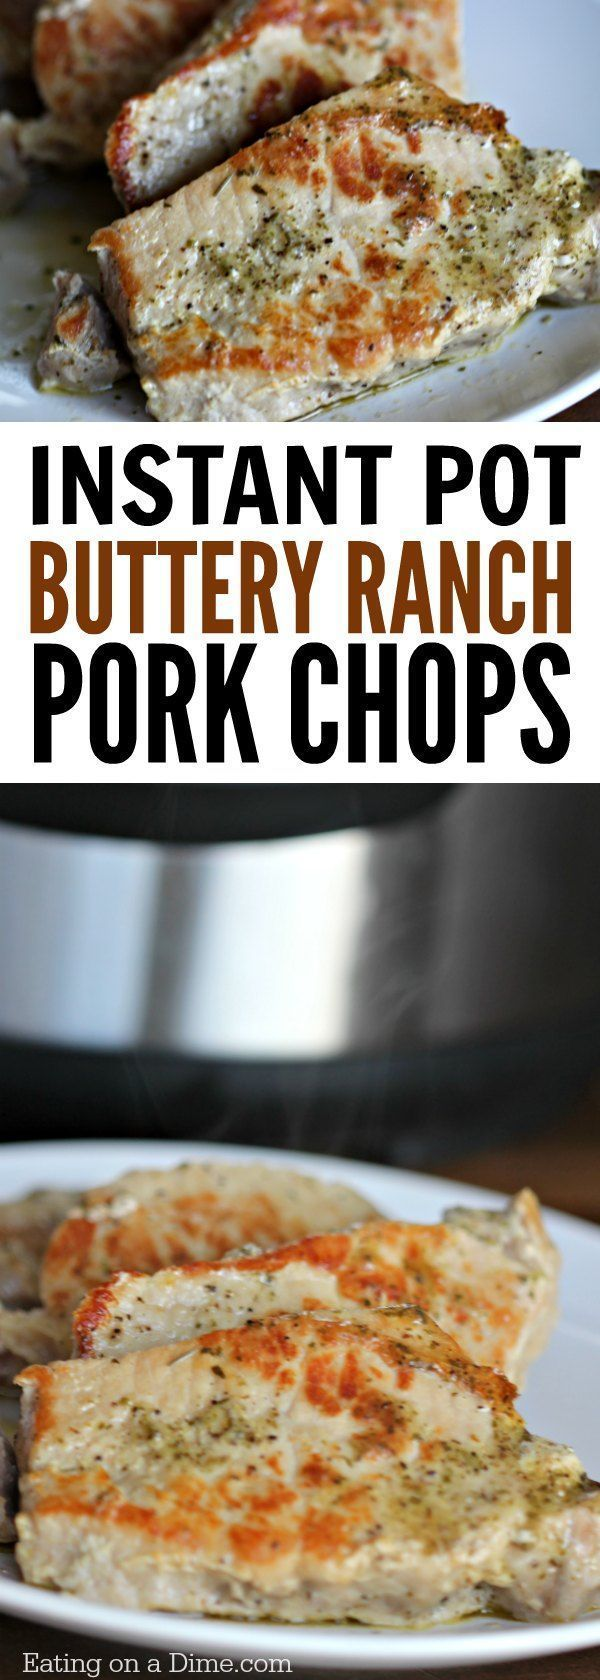 Instant Pot Boneless Pork Chops